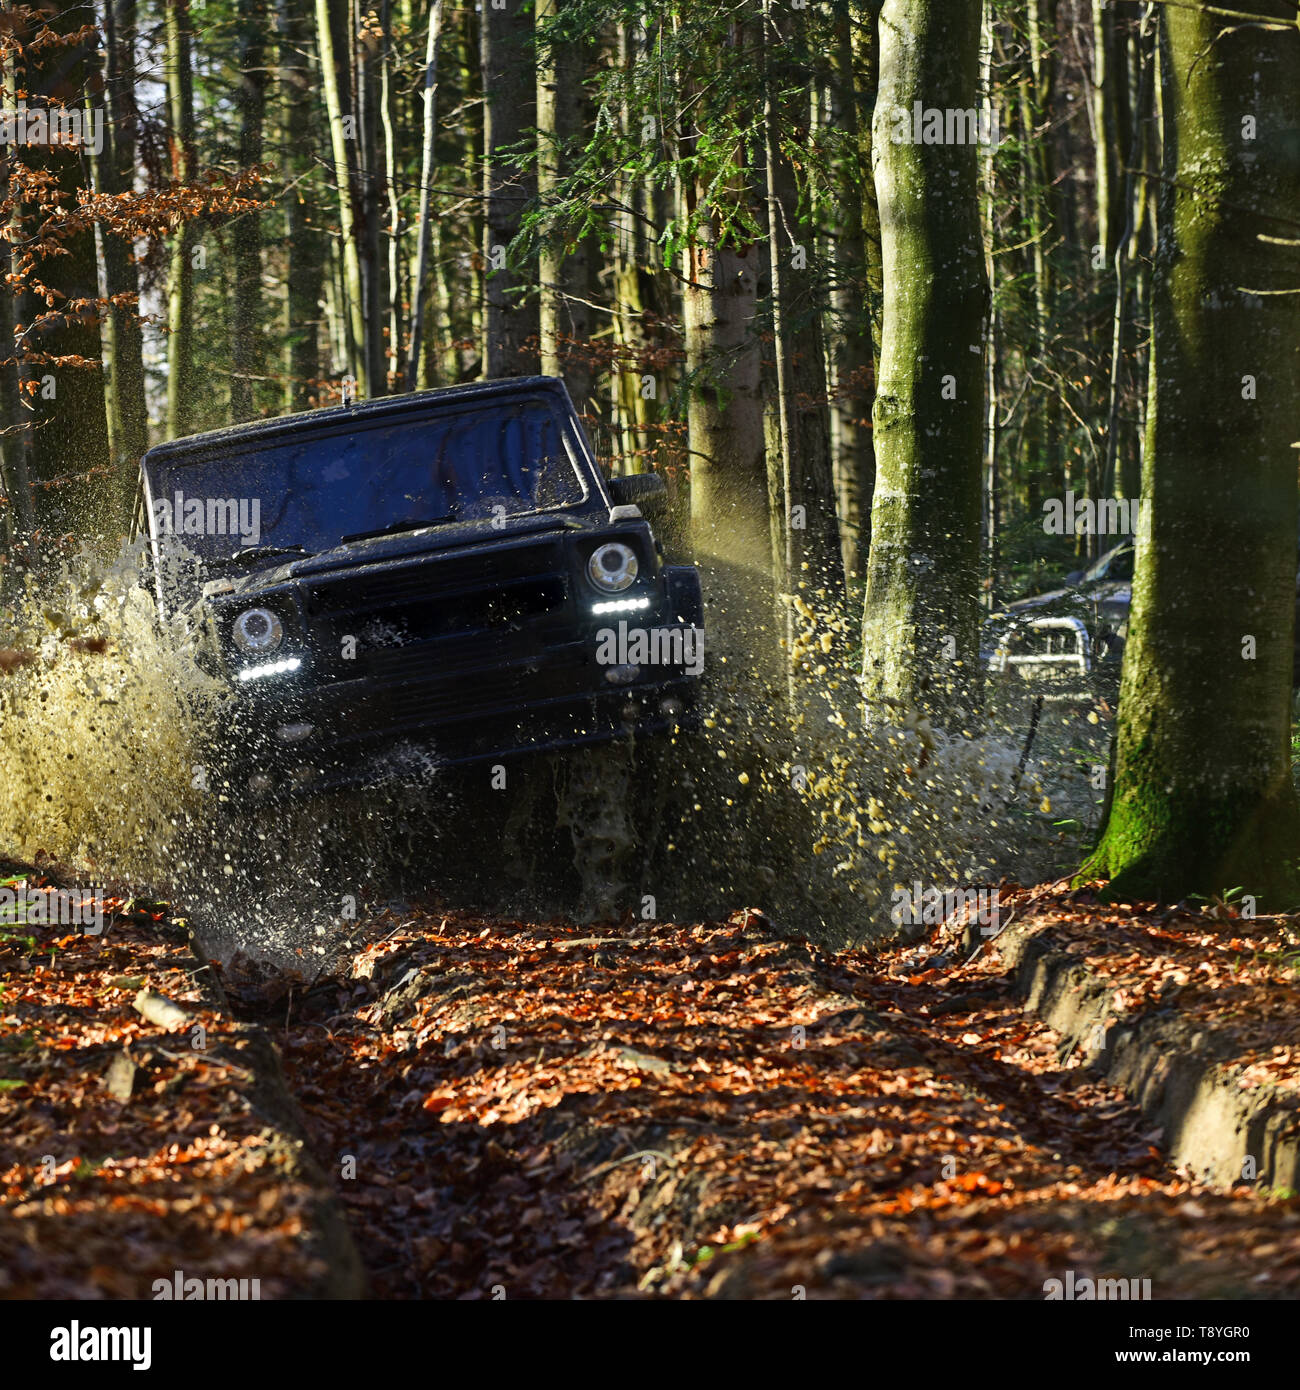 Car racing in autumn forest. SUV or offroad car on path covered with leaves crossing puddle with water splash. Offroad race on fall nature background - Stock Image